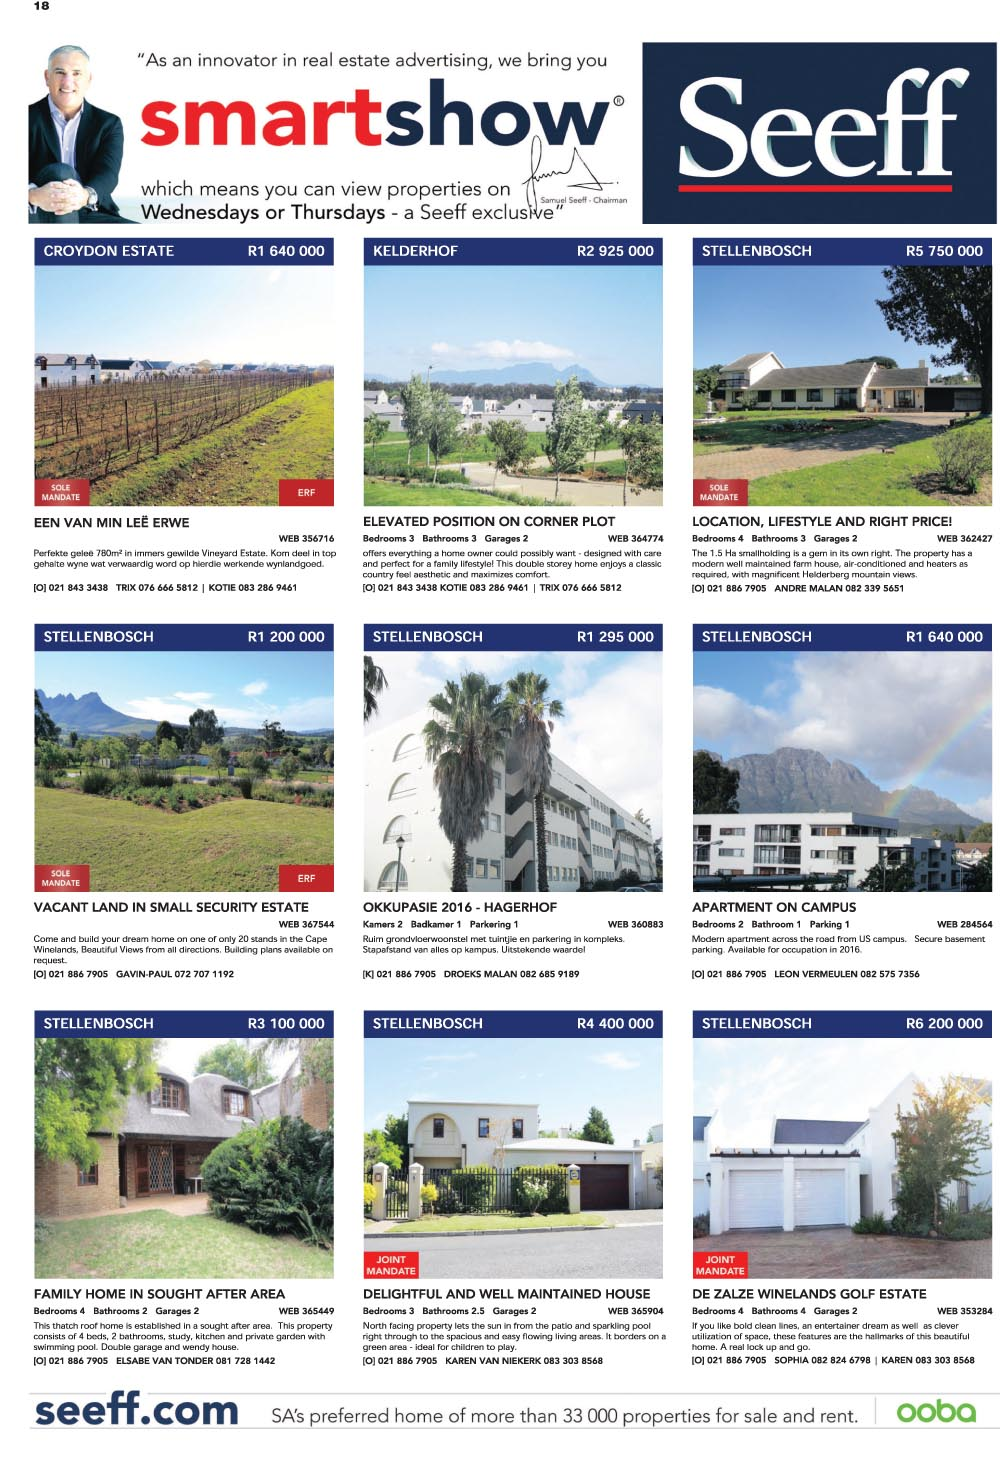 You are browsing images from the article: Property Selection-November 04 2015